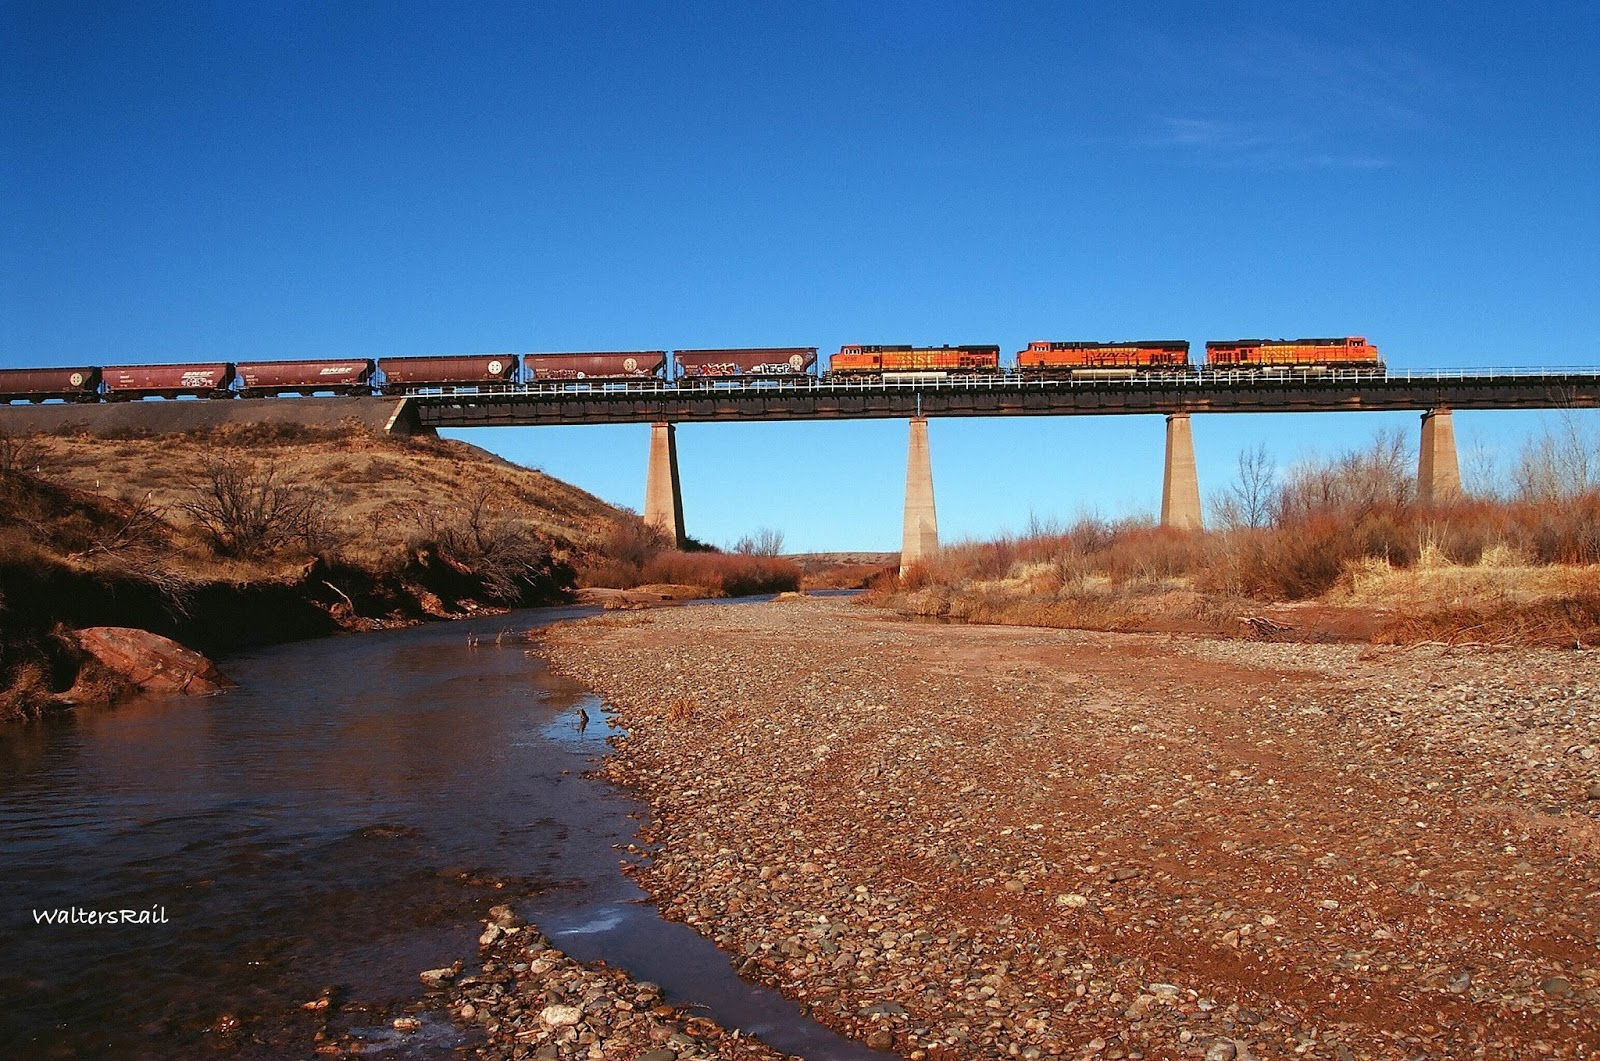 Eastbound Grainer as Seen From the Riverside & WaltersRail : Pecos River Bridge -- Fort Sumner New Mexico azcodes.com